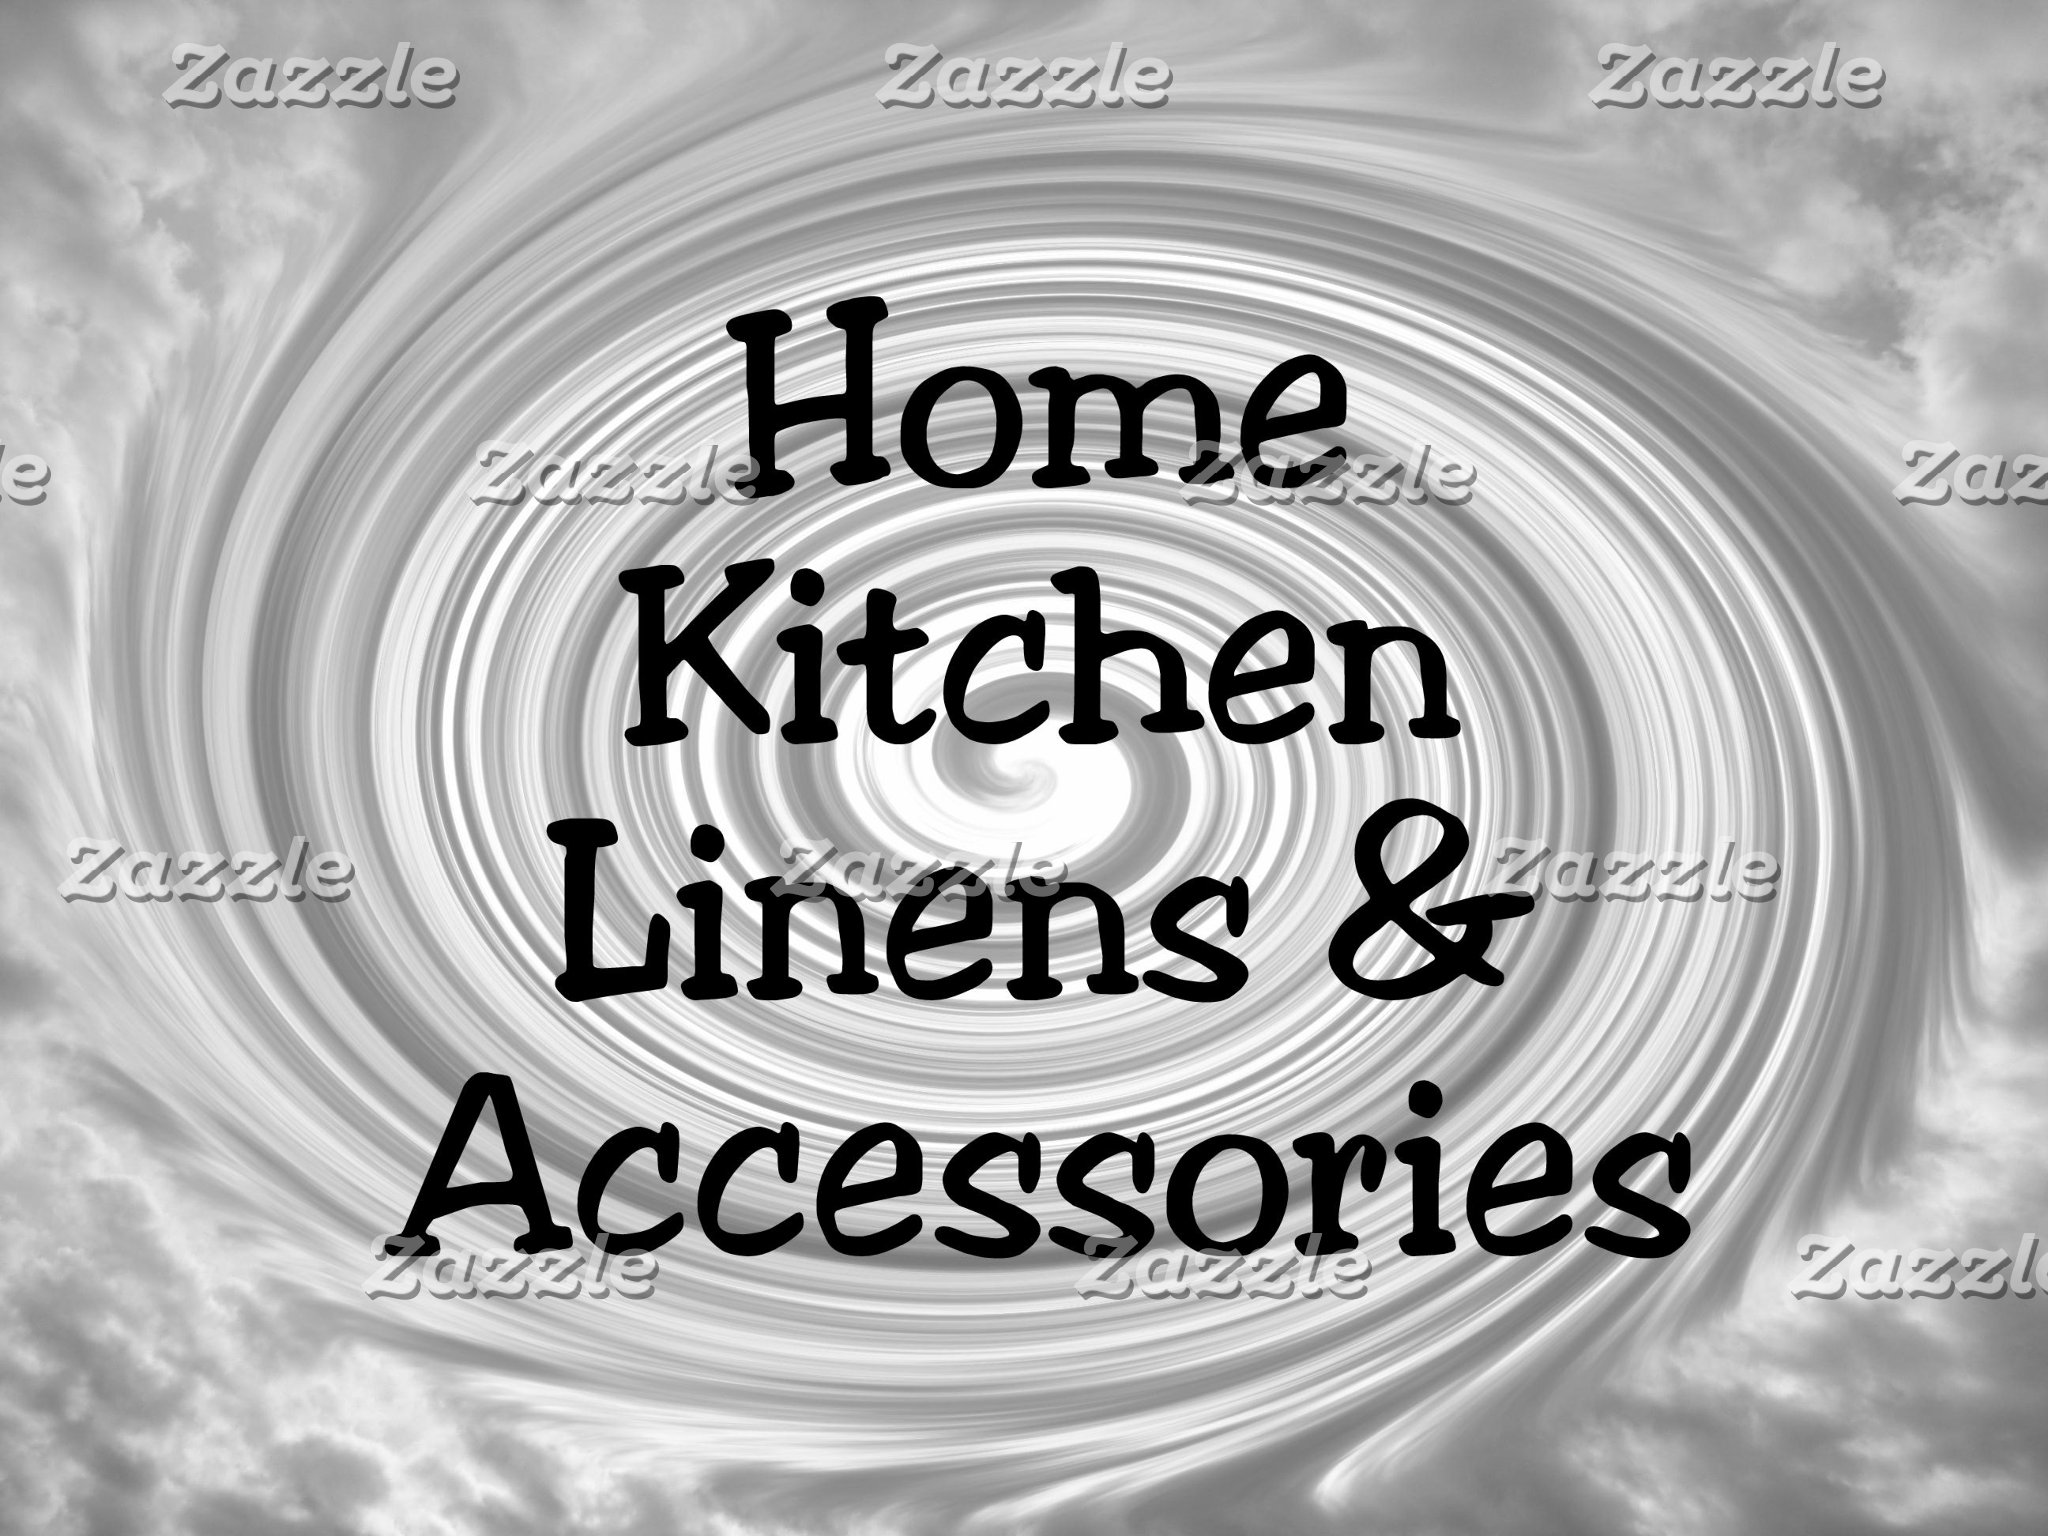 Home Kitchen & Accessories